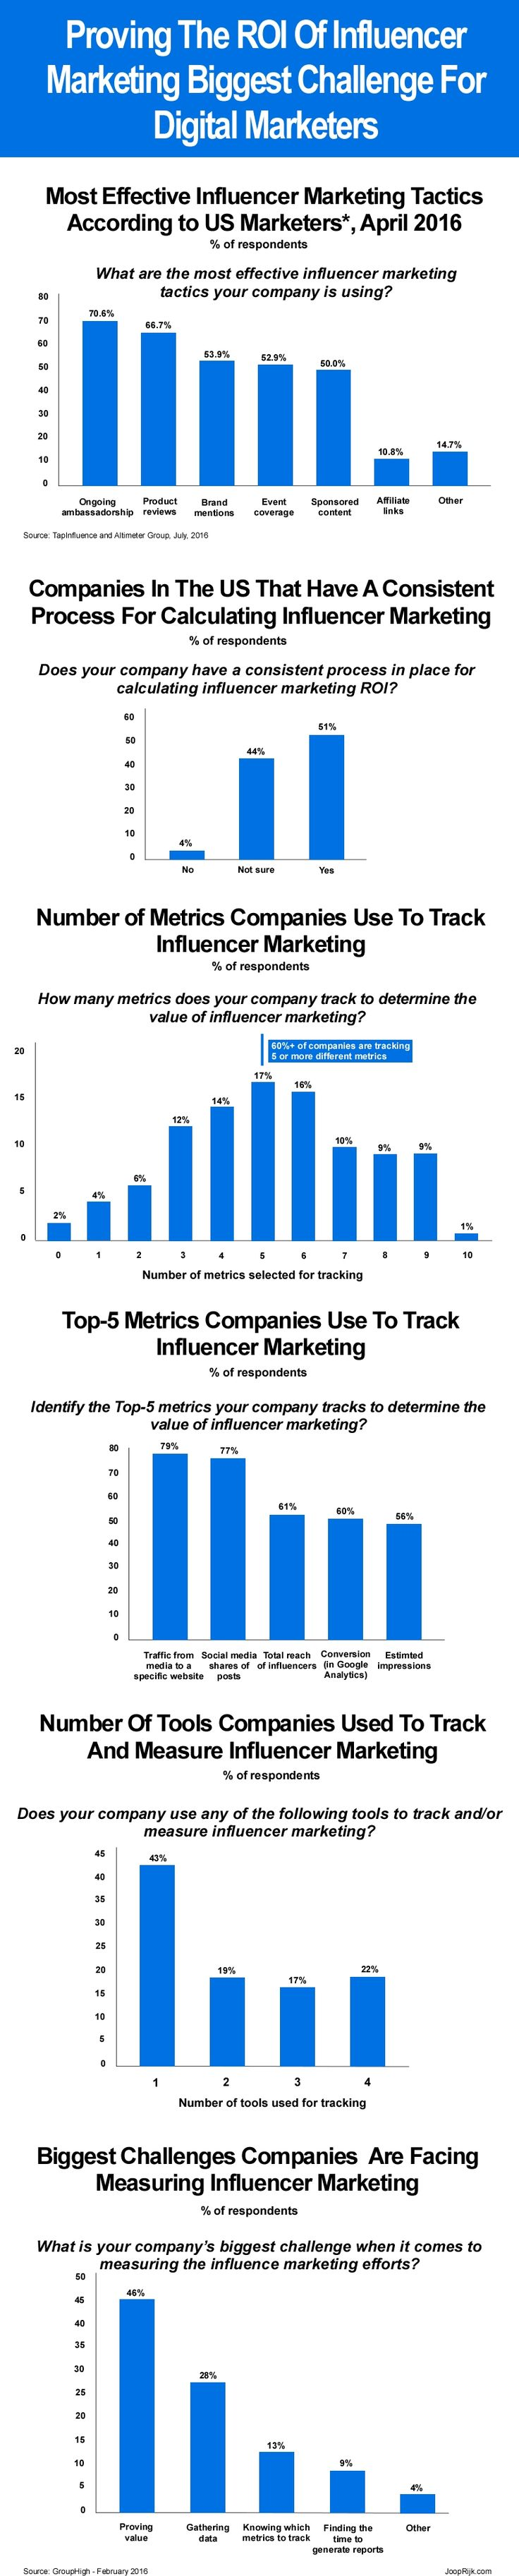 Brand marketers are still learning how to best use influencer marketing strategies and tactics and to determine the real value of influencer marketing and for many it is a daunting challenge. To find out more about how marketers measure and calculate the ROI of influencer marketing, GroupHigh surveyed 139 marketing professionals about their views and approaches. More detail about how marketers prove the ROI of influencer marketing here: http://joopcrijk.com/influencer-marketing/ #marketing